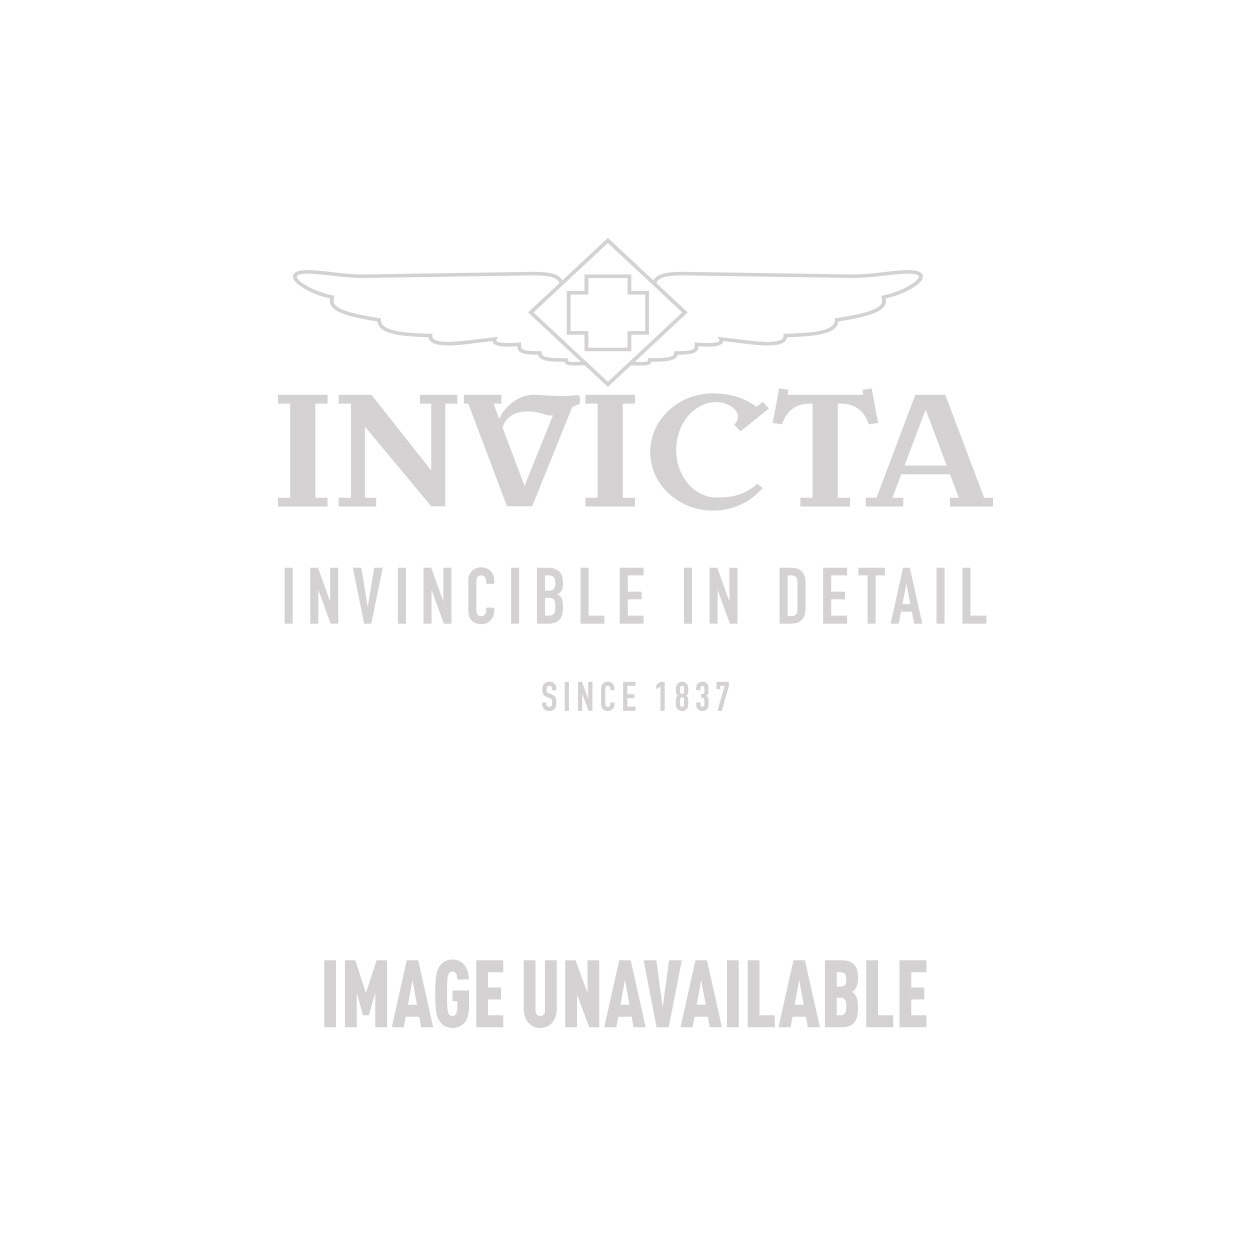 Invicta Corduba Mechanical Watch - Stainless Steel case with Steel, Black tone Stainless Steel, Polyurethane band - Model 17245